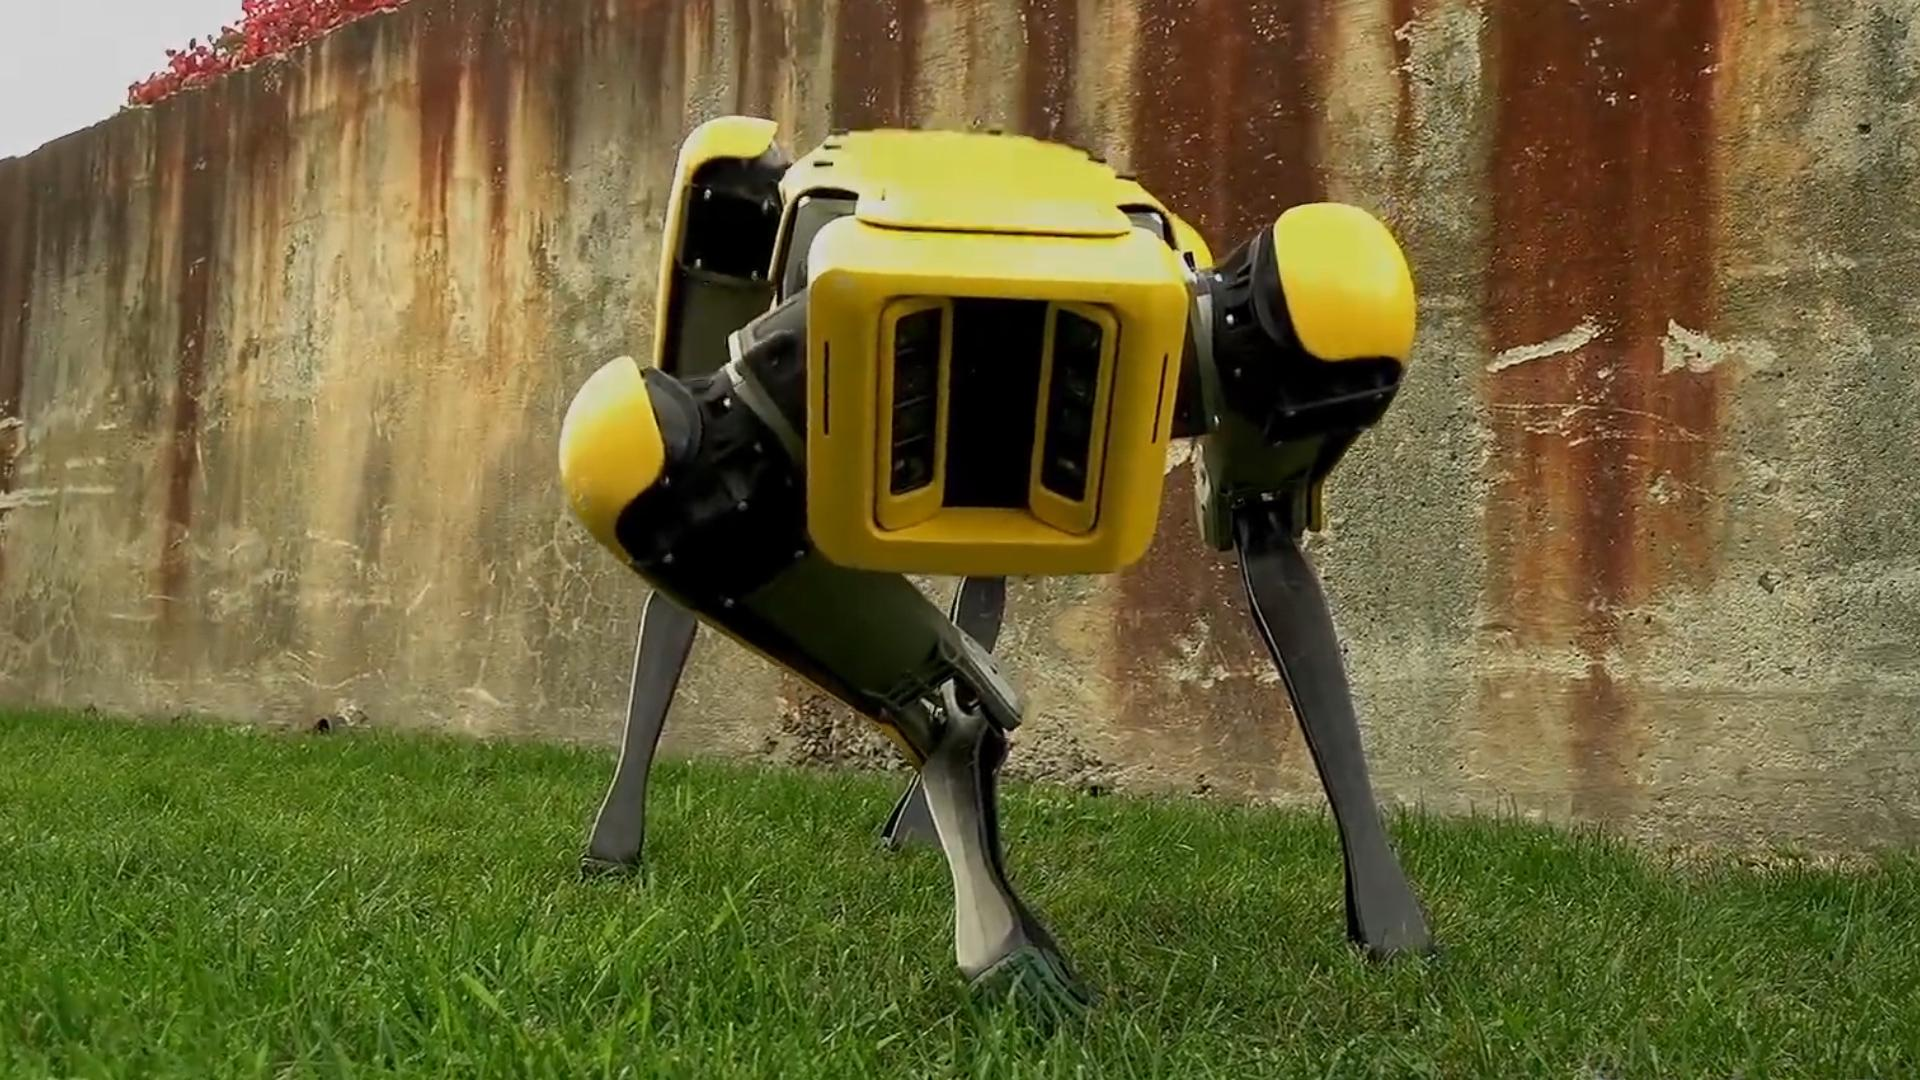 This sophisticated robot dog could be in your home sooner than you think